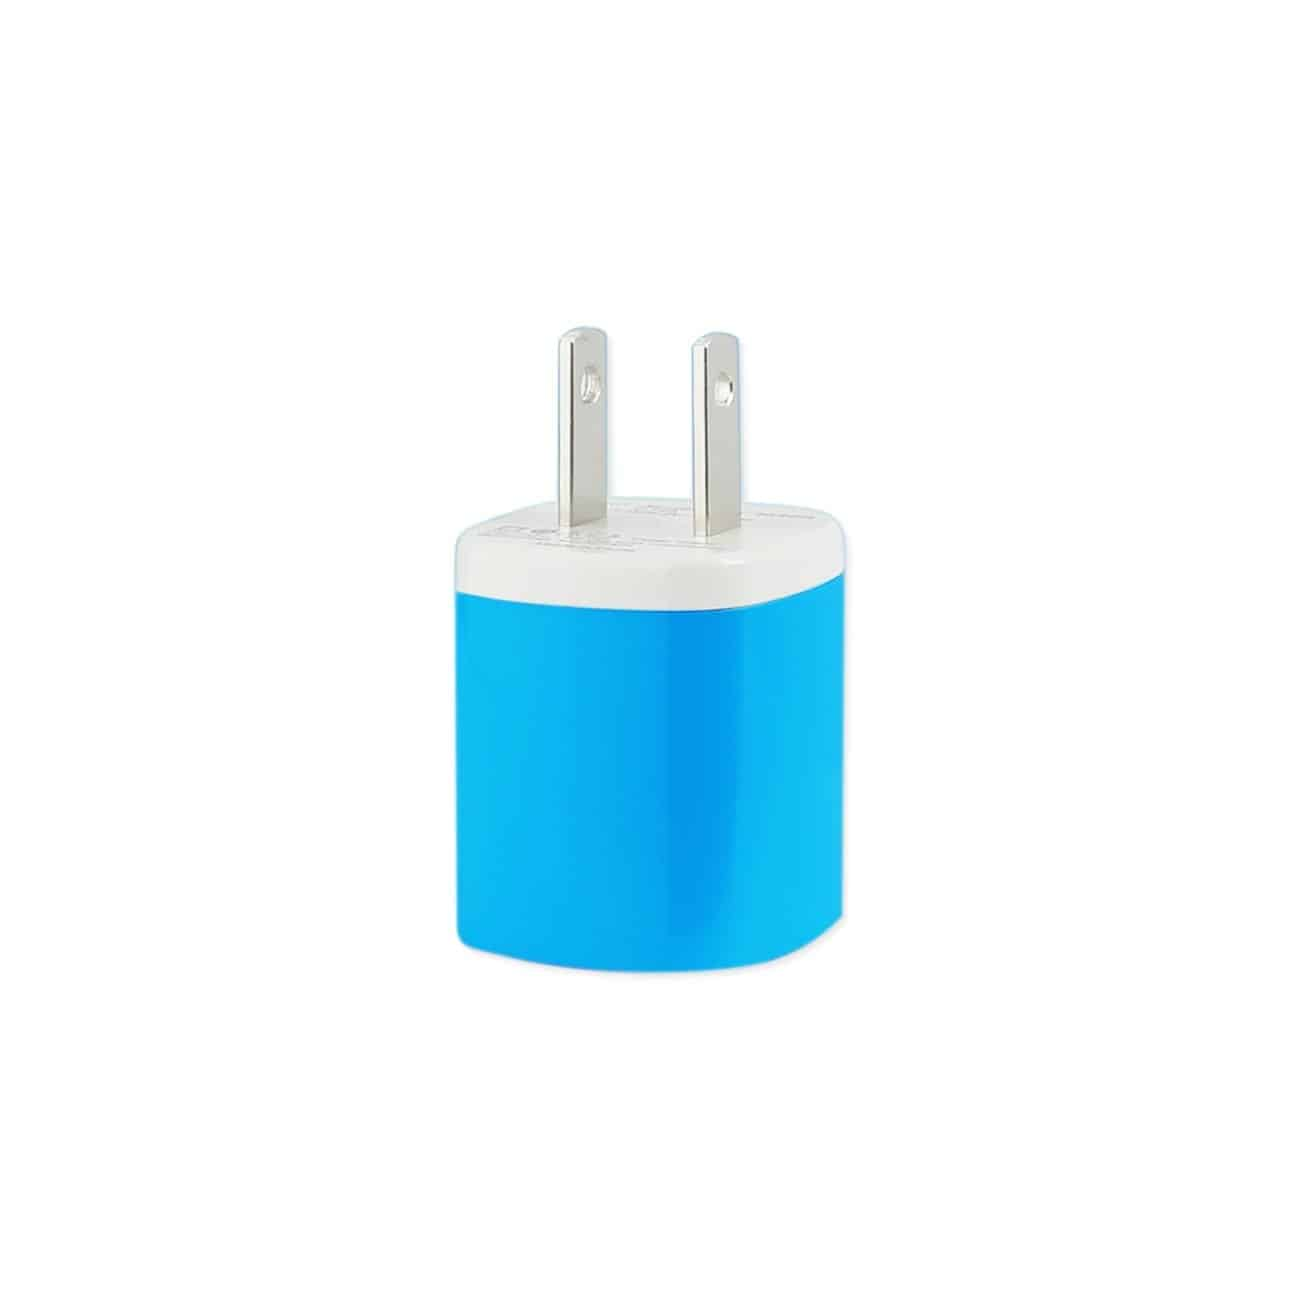 1 AMP WALL USB TRAVEL ADAPTER CHARGER IN BLUE